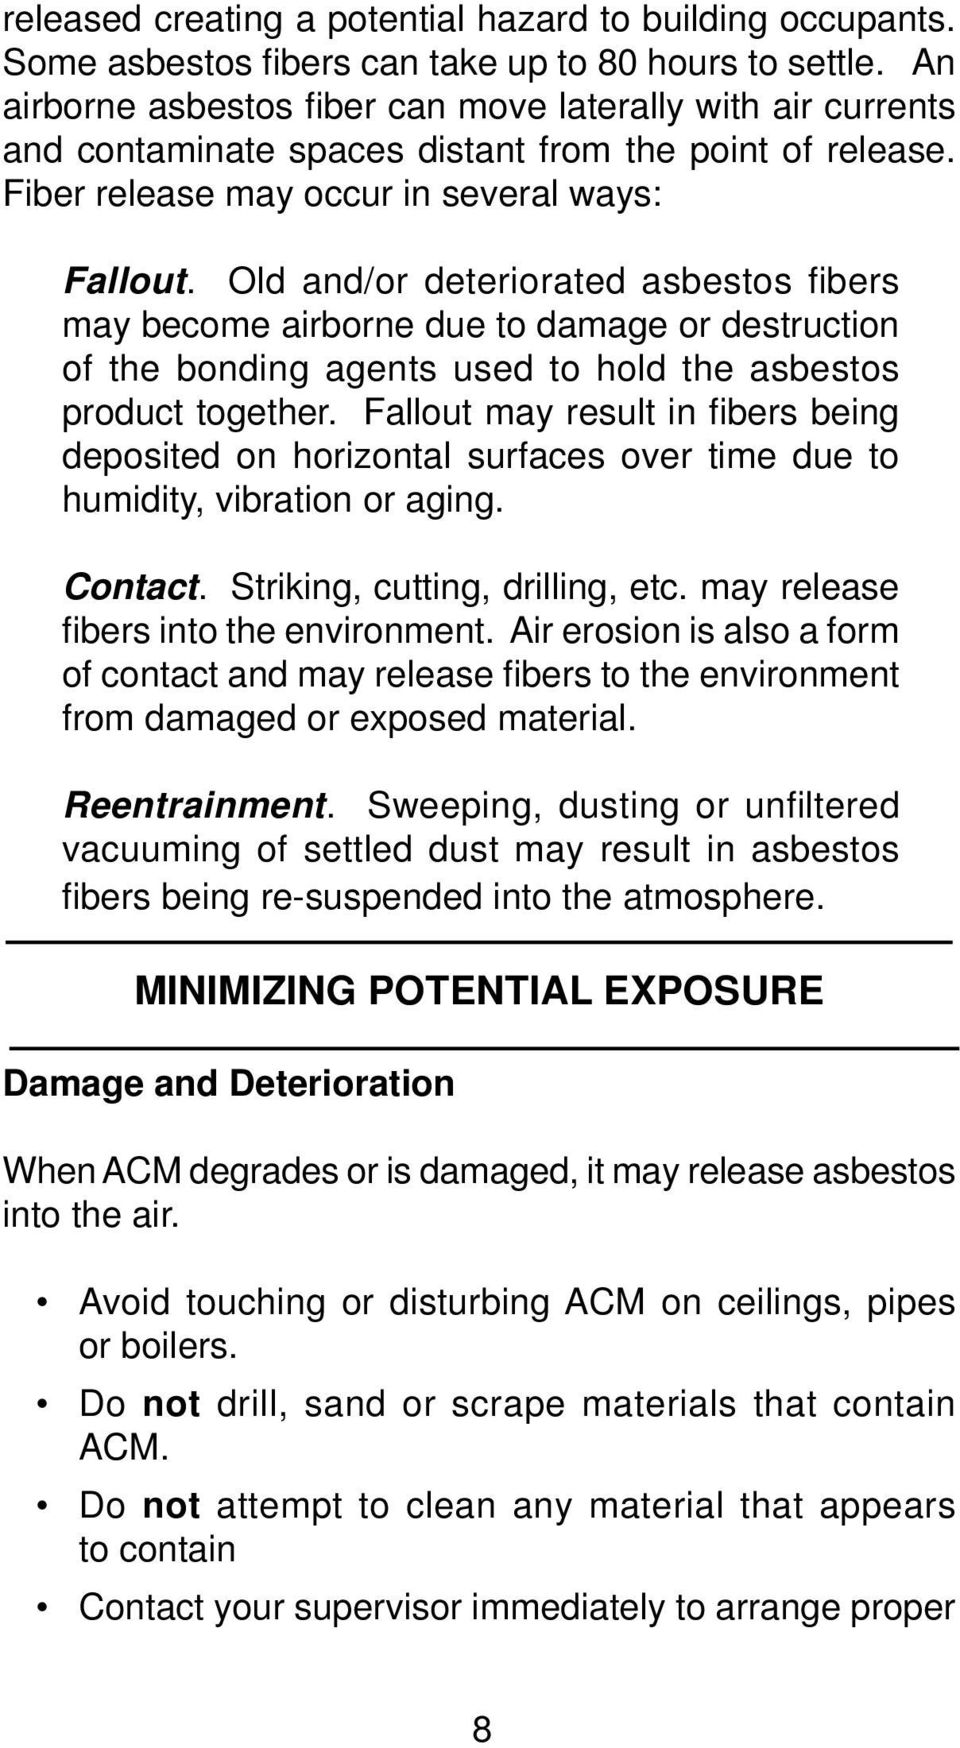 Old and/or deteriorated asbestos fi bers may become airborne due to damage or destruction of the bonding agents used to hold the asbestos product together.